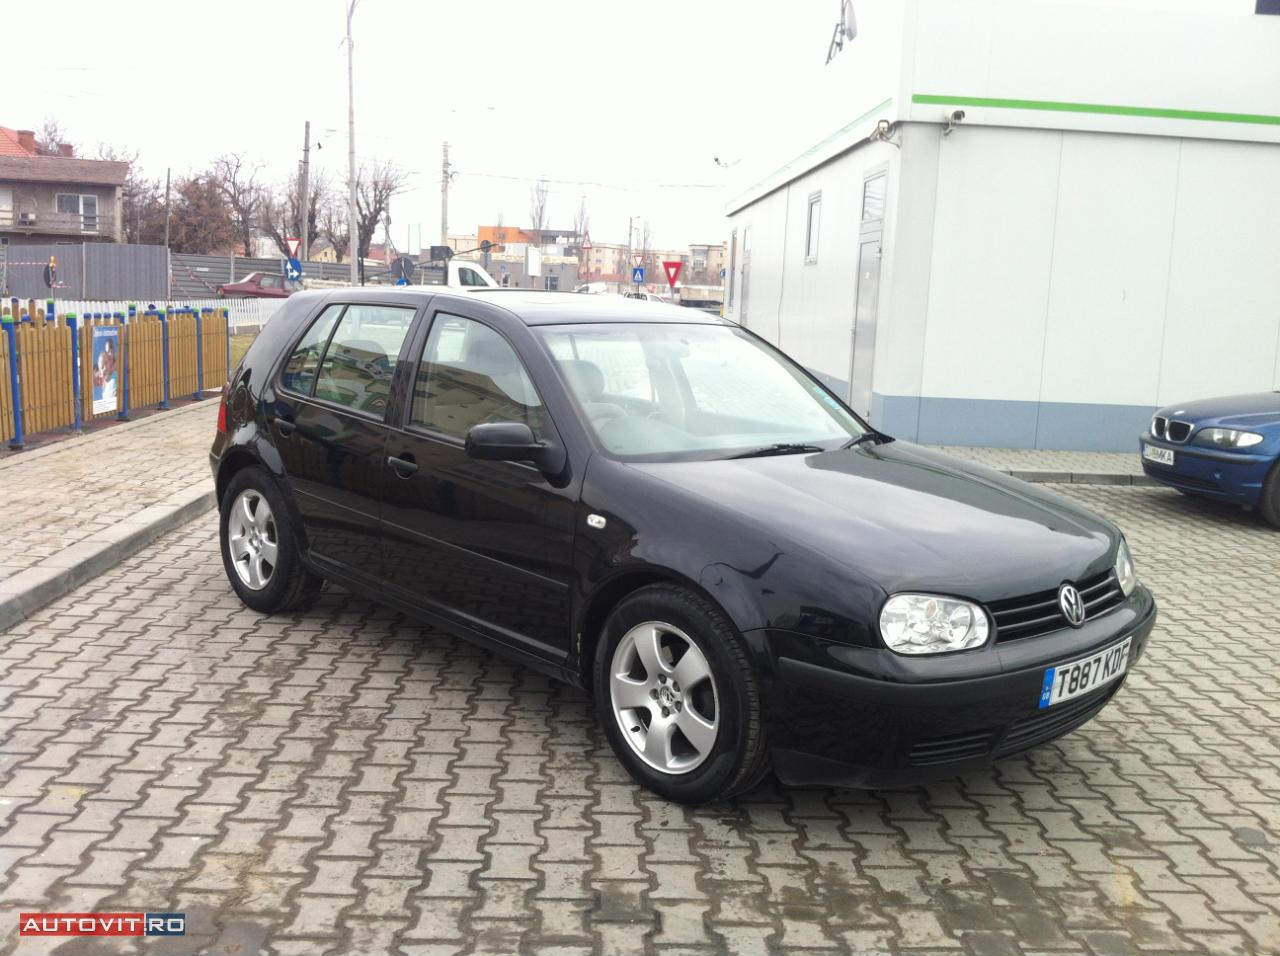 dezmembrez volkswagen golf iv 2000 diesel hatchback 27 aprilie 2012 14692. Black Bedroom Furniture Sets. Home Design Ideas